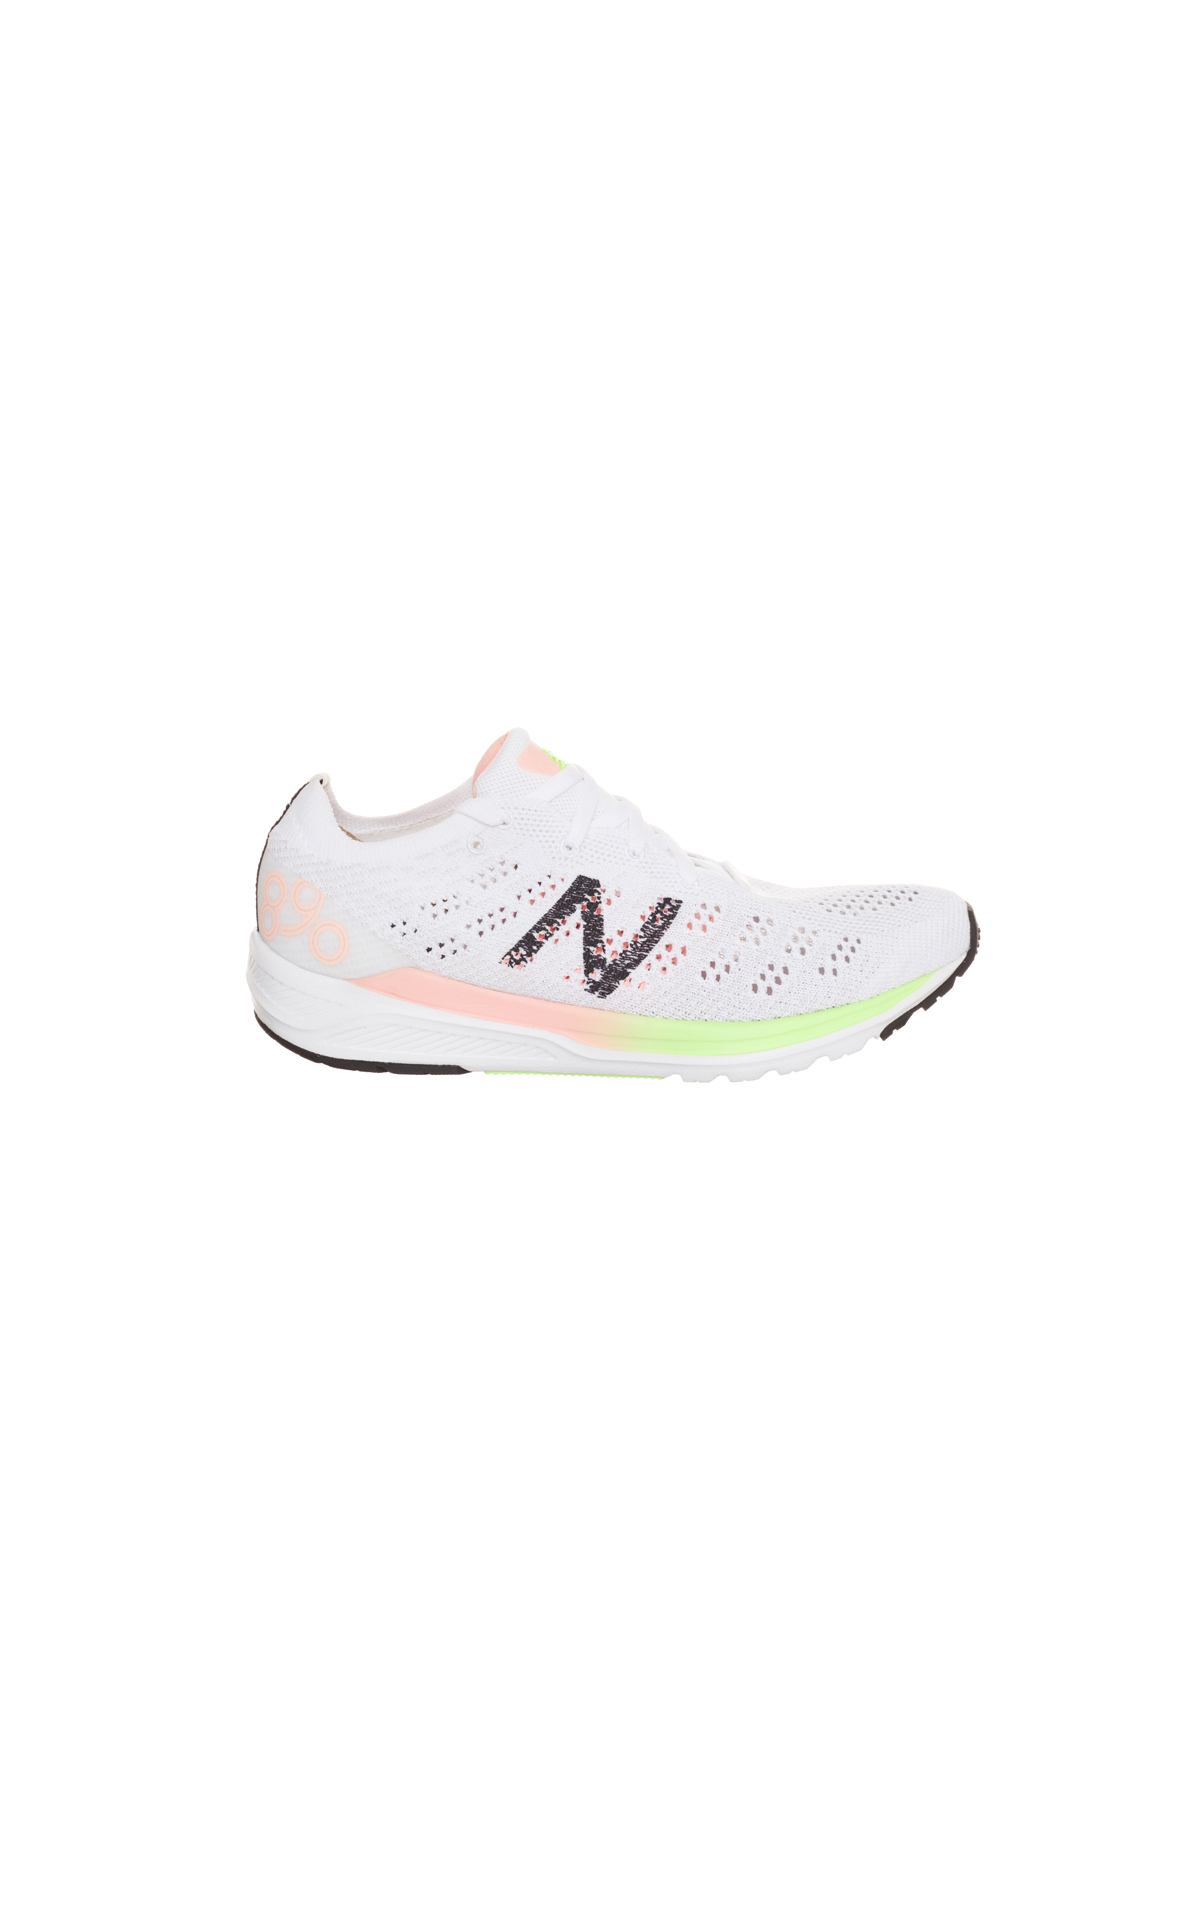 New Balance Running shoes  from Bicester Village